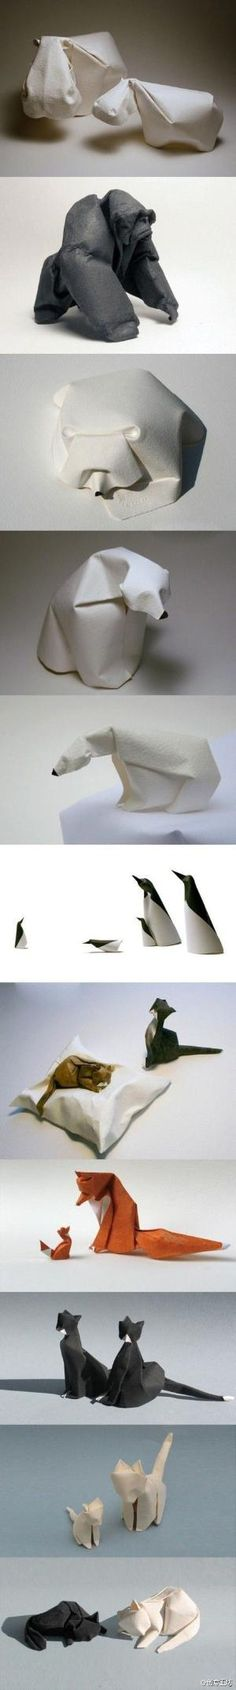 Origami Zoo by Dinh Truong Giang #Origami #Animals by lawanda